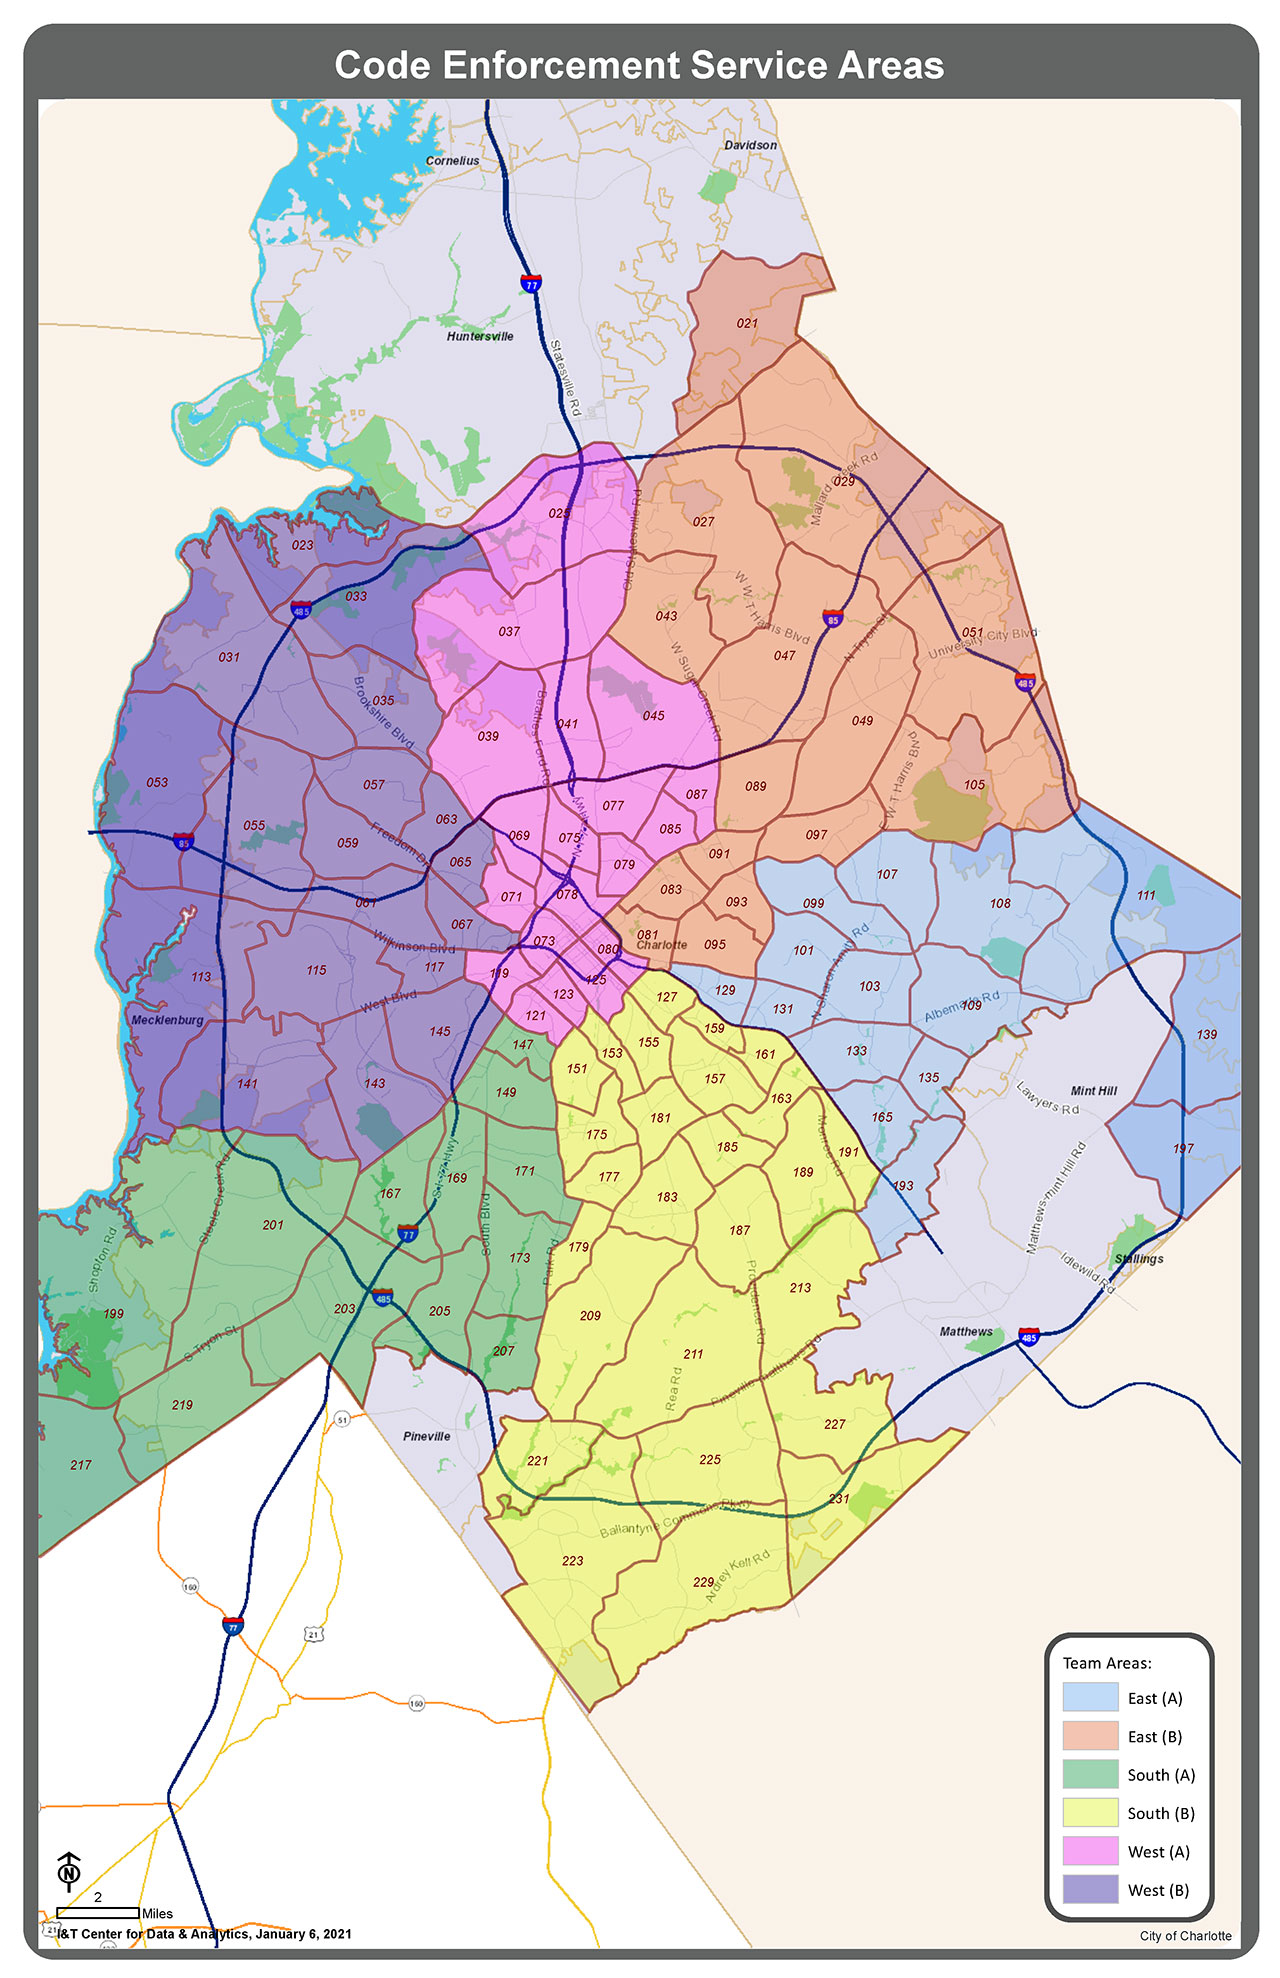 Map detailing Code Enforcement Service areas